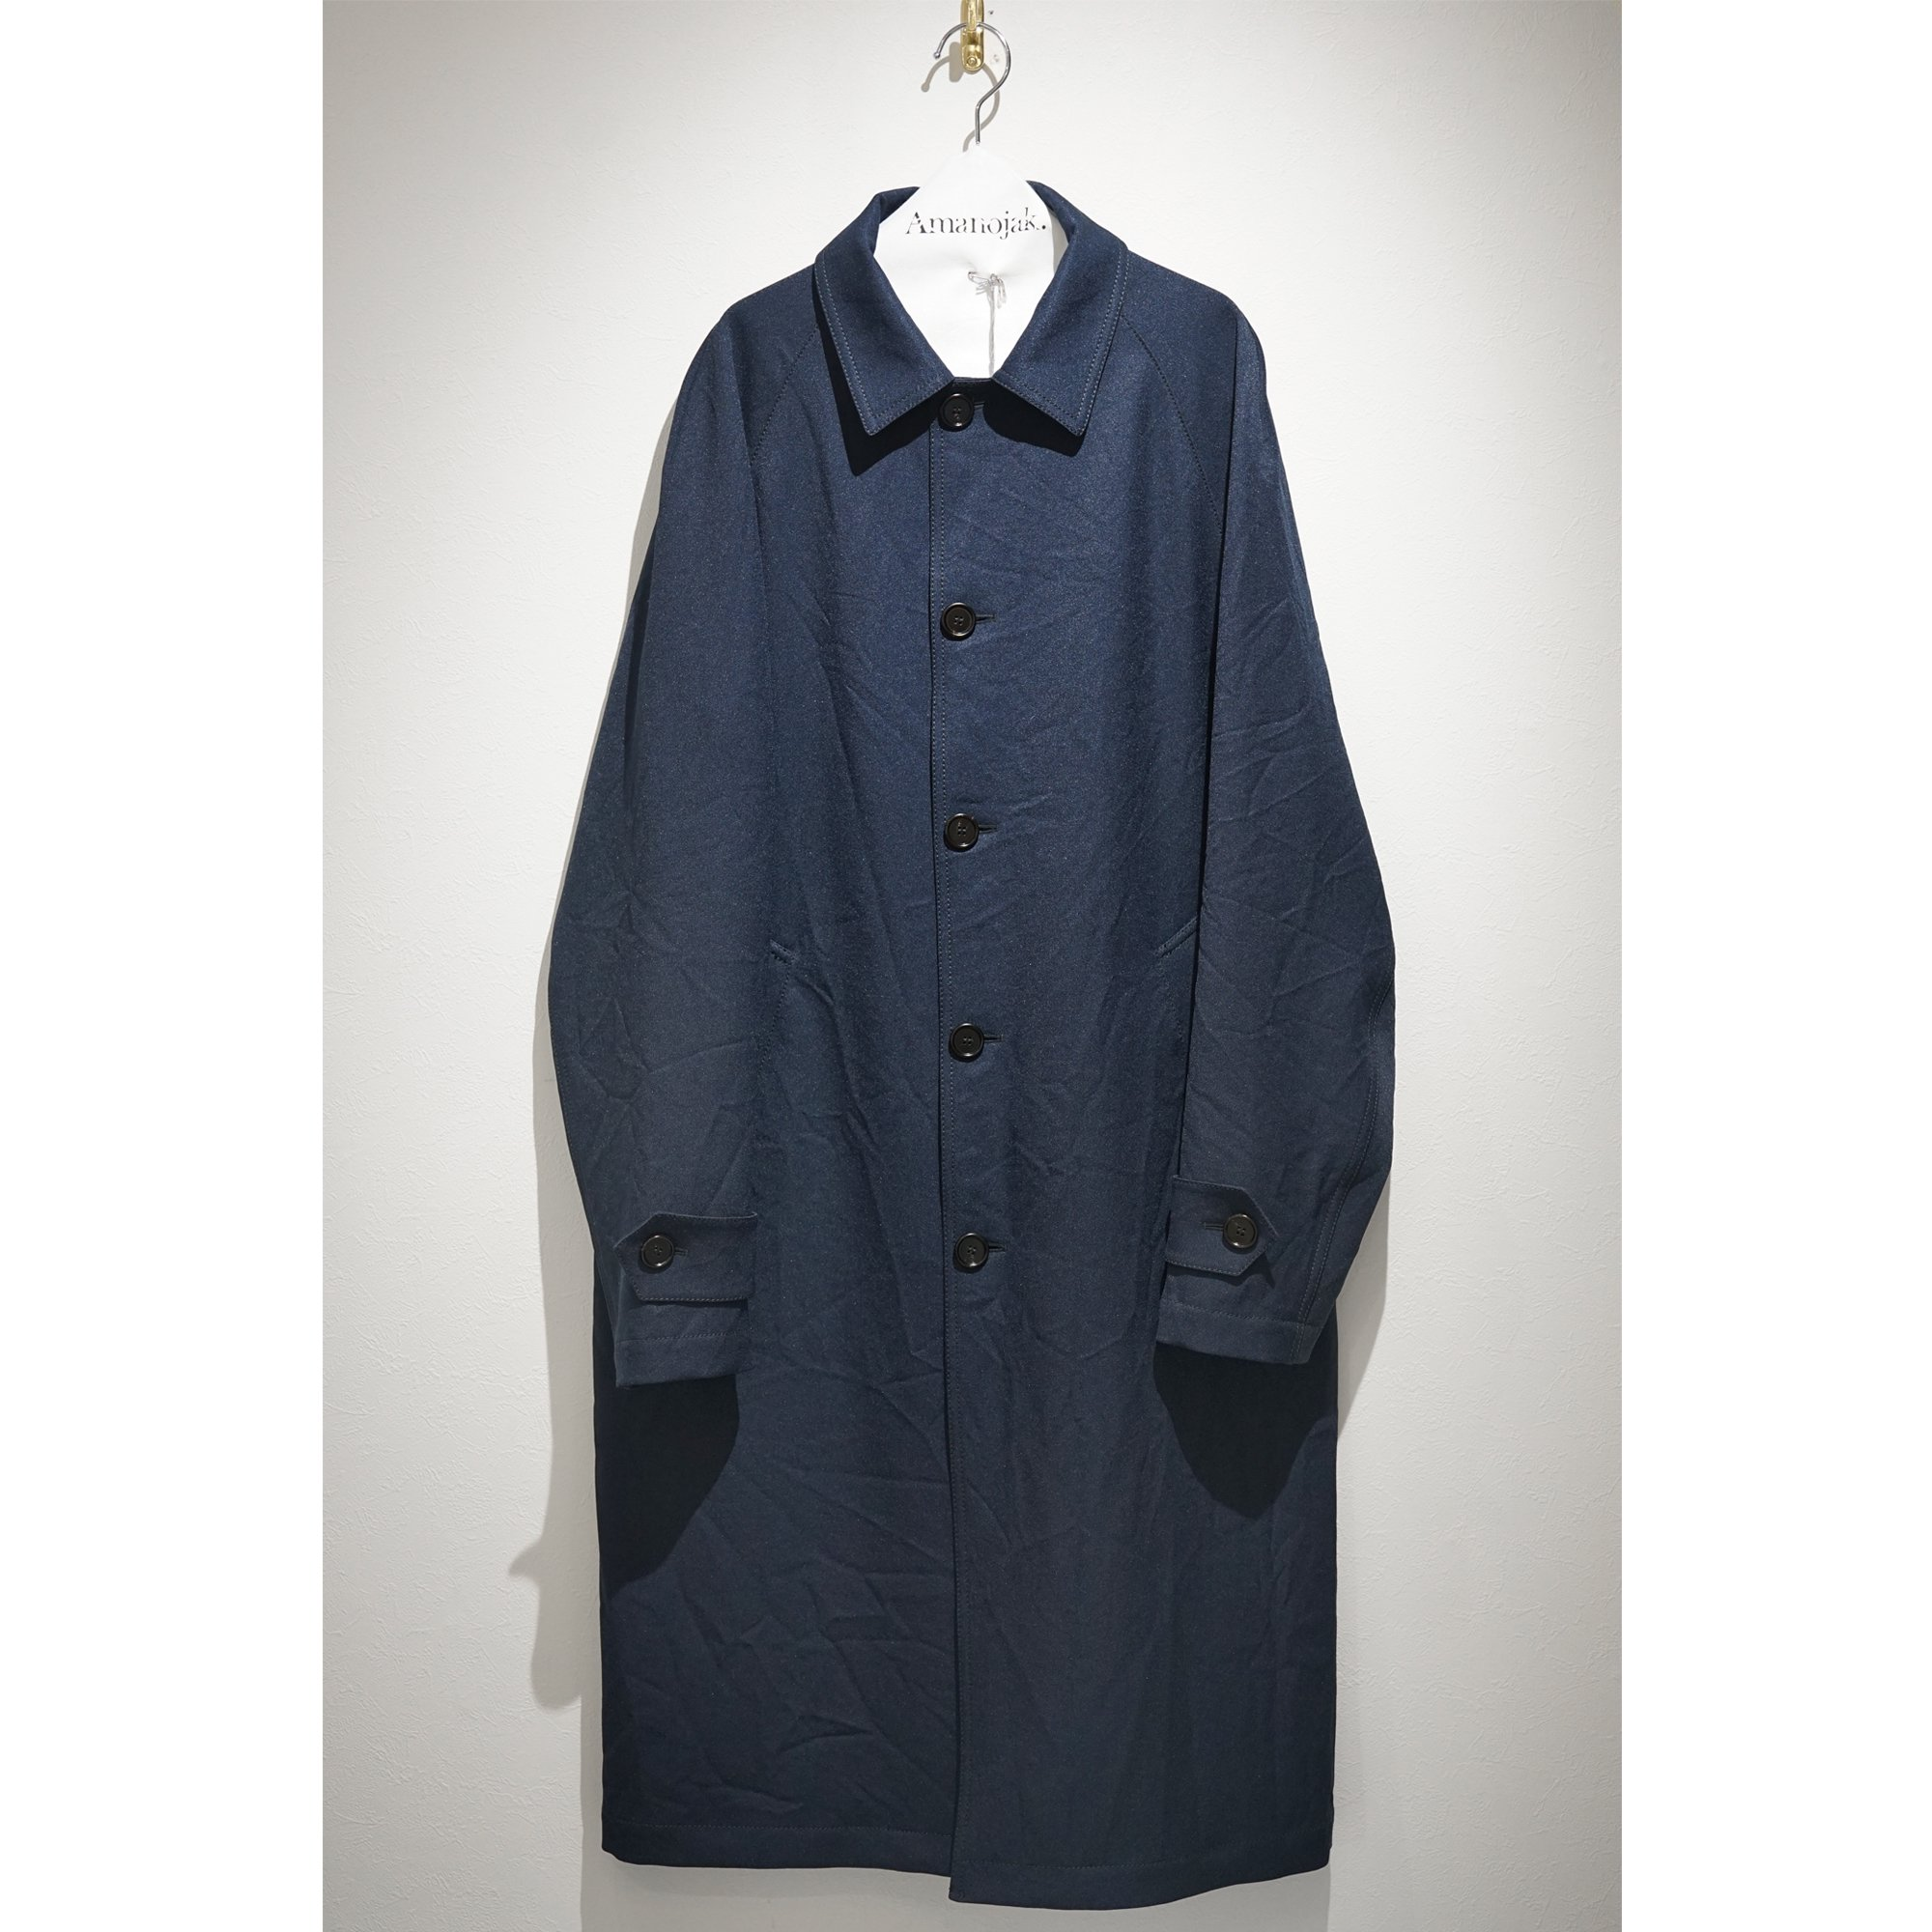 MARNI-POLY COTTON GABARDINE SOUTIEN COLLAR COAT<br>(在庫なし)